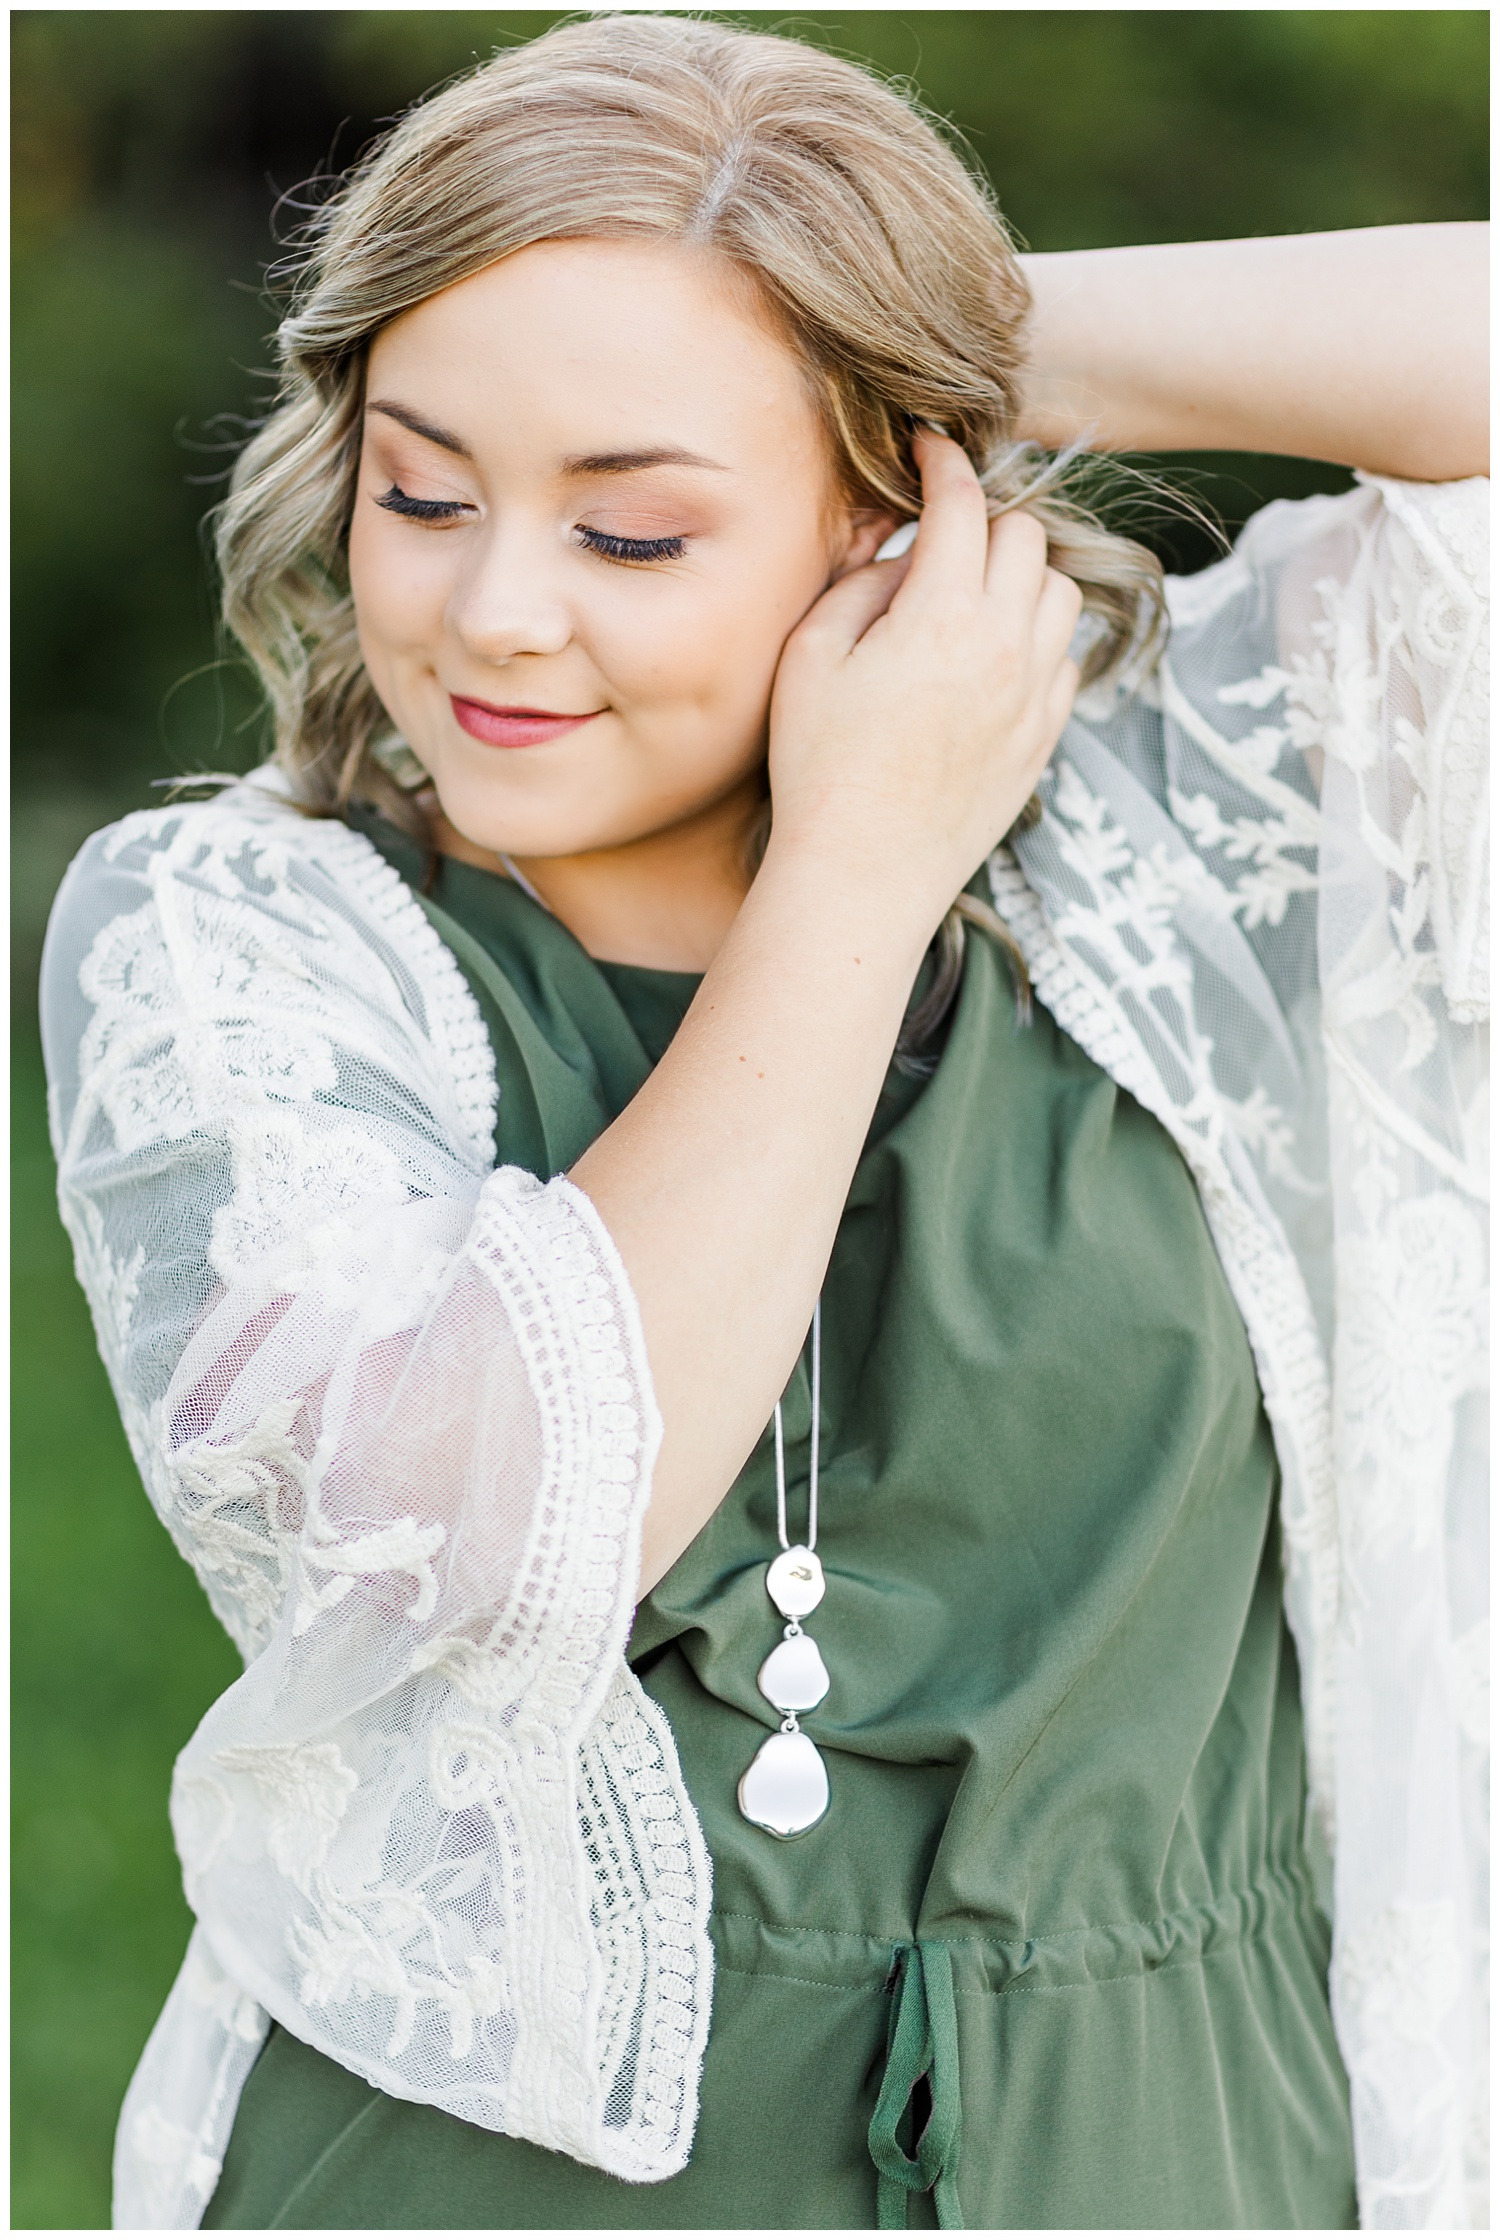 Cloey, wearing a green dress with a cream lace kimono, slowly tucks her hair behind her ear while looking down   CB Studio